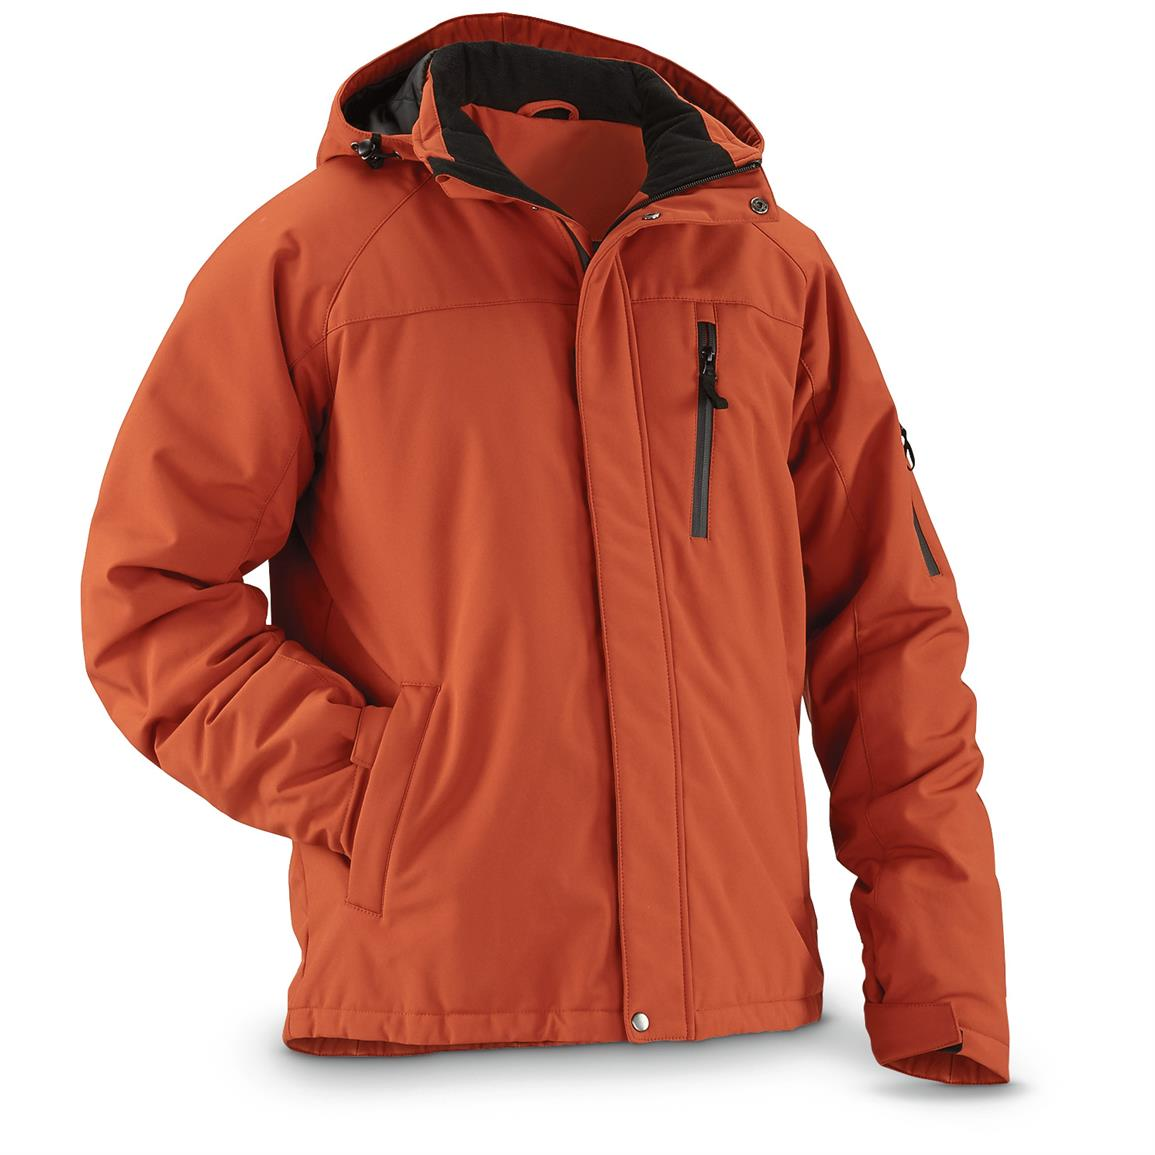 Guide Gear Men's Siberian Jacket, Terra Cotta